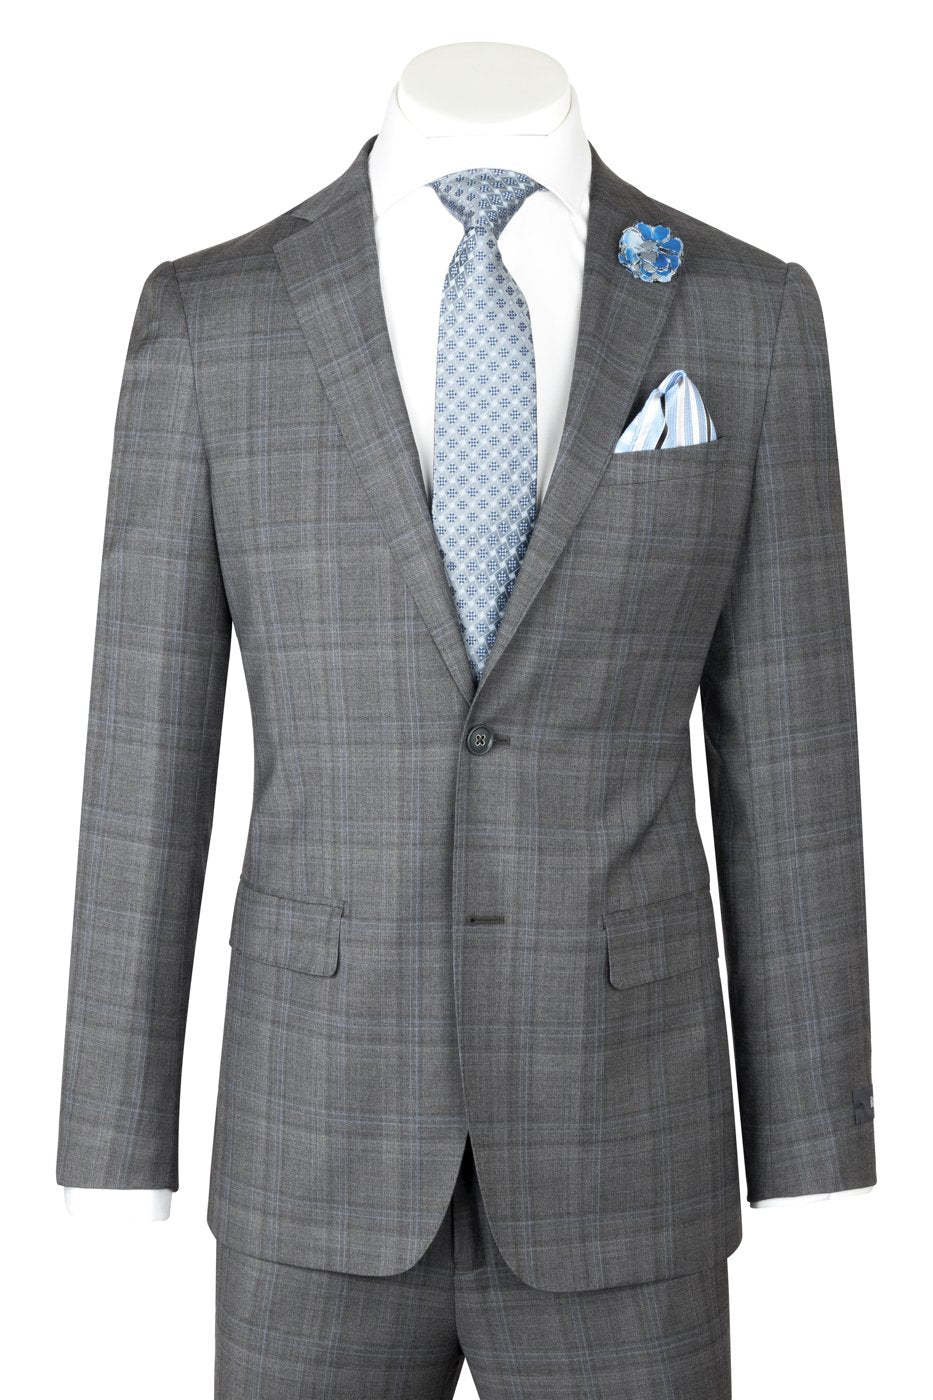 Porto Slim Fit Medium Gray with blue windowpane, Pure Wool Suit by Reda Cloth by Canaletto Menswear CR141607/4